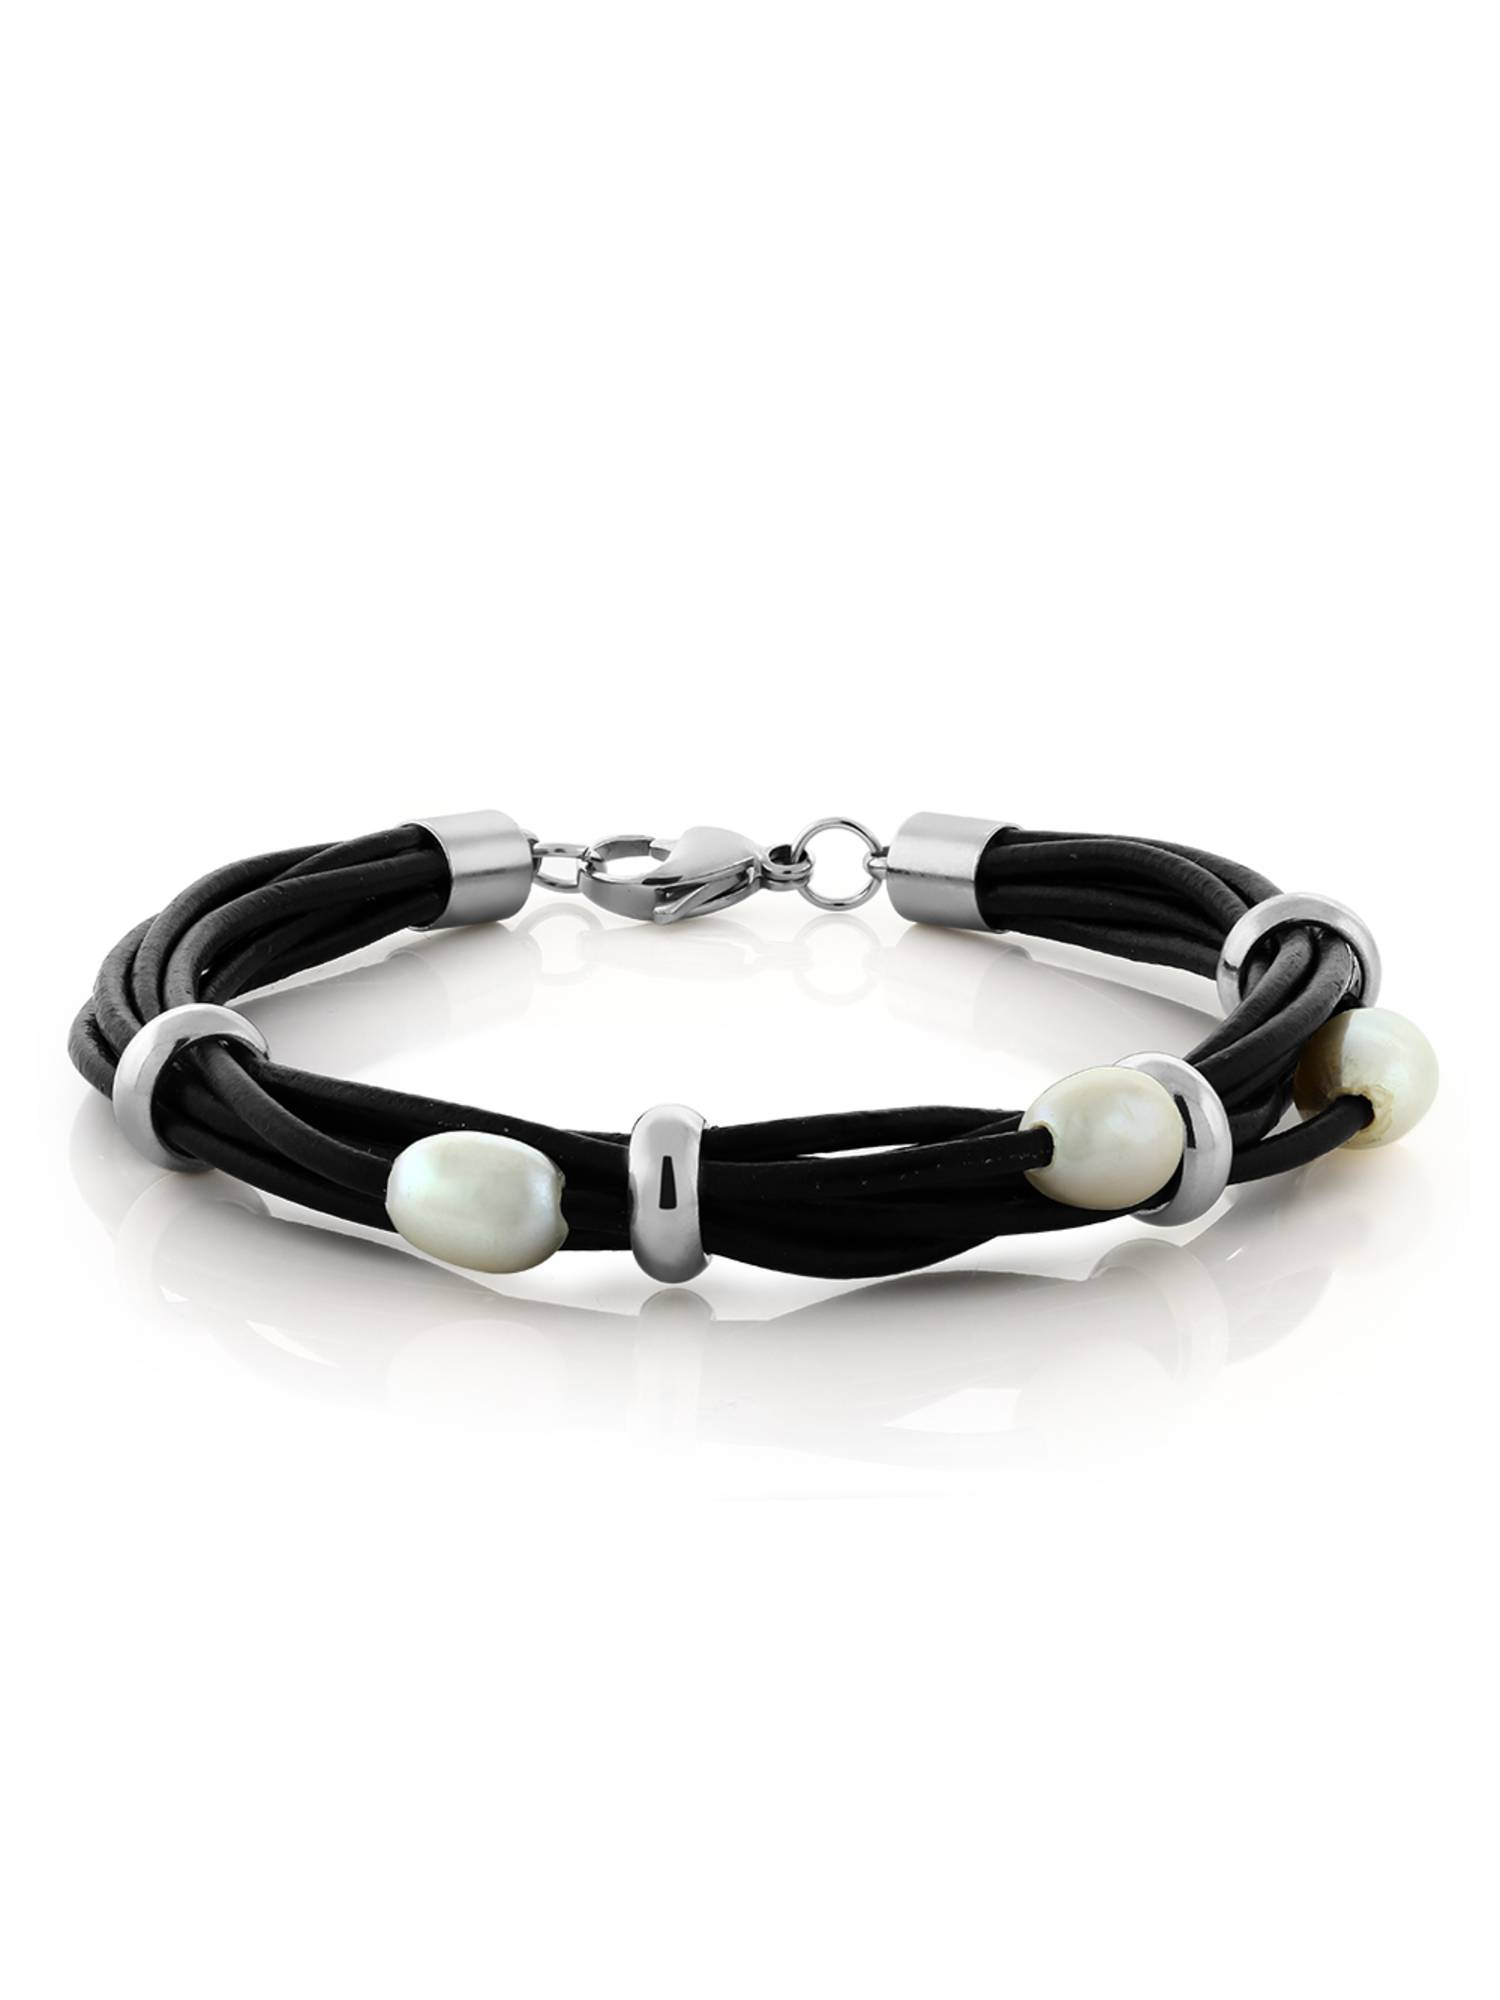 Bolo Leather Braided Cultured Freshwater Pearl Bracelet